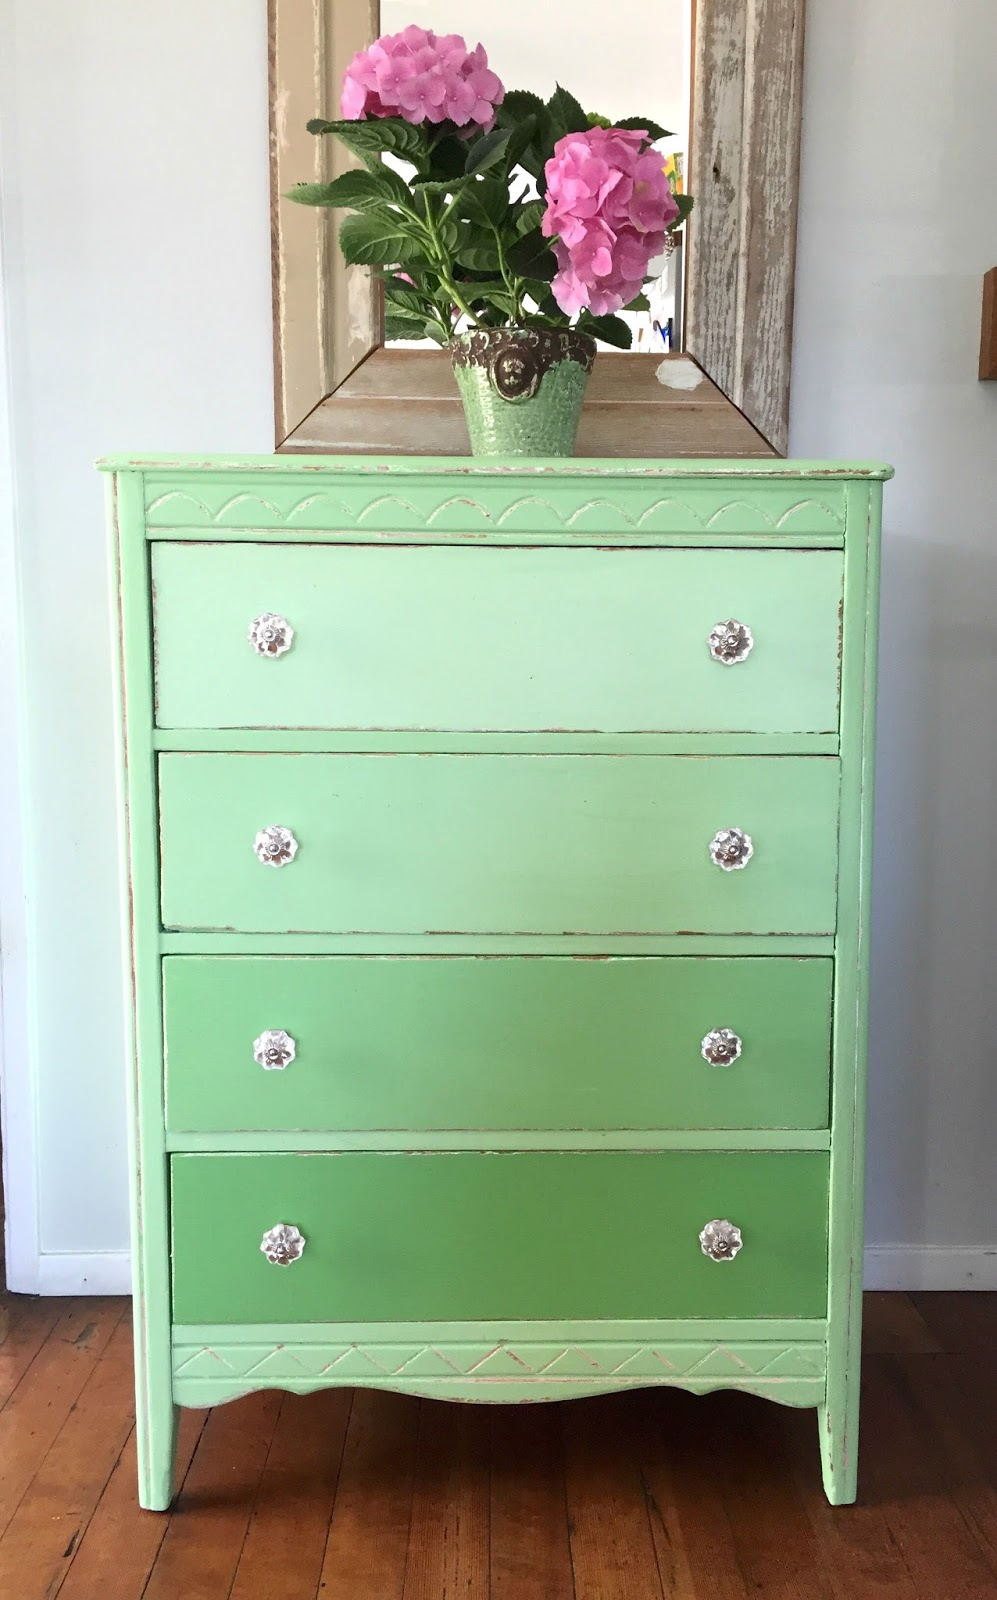 How To Paint A Green Ombre Dresser